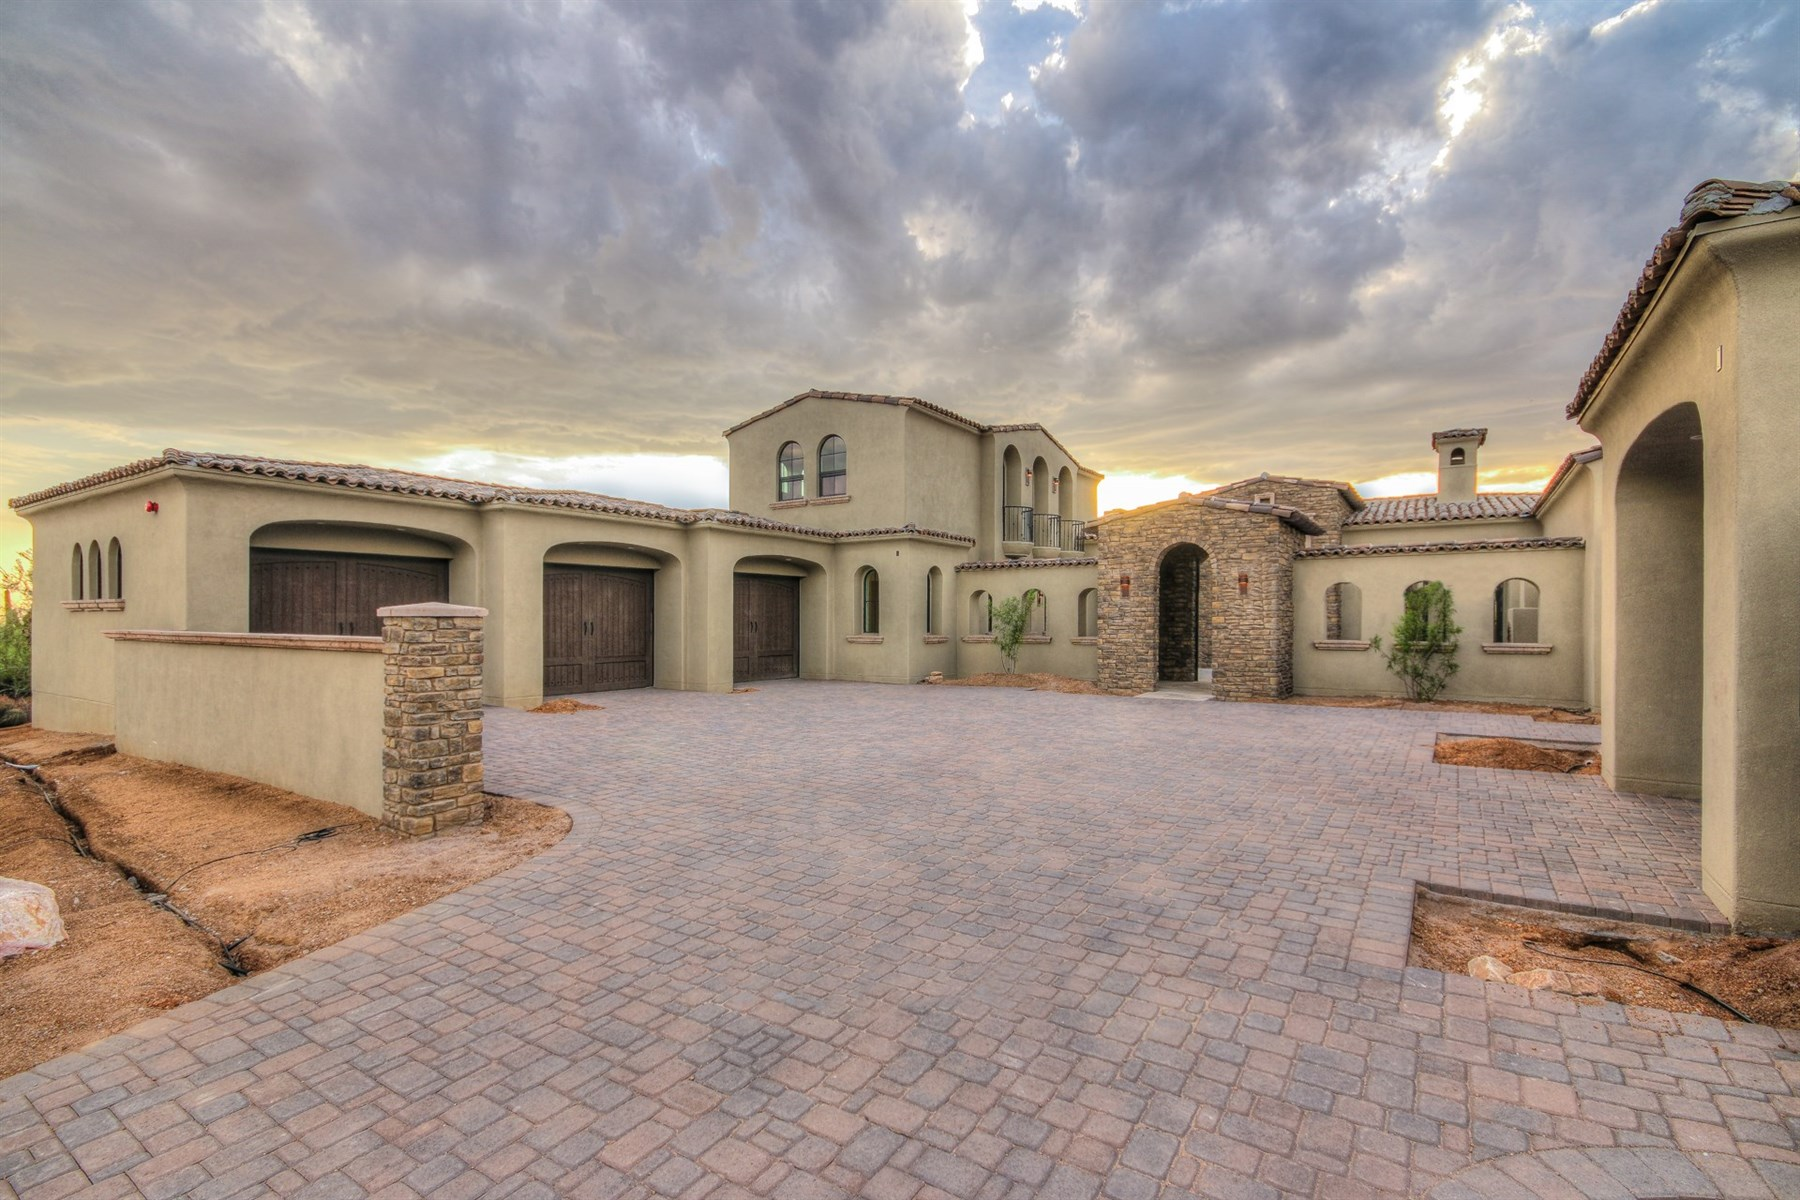 Single Family Home for Sale at Now fully completed in desert mountain sweeping mountain and city lights. 40036 N 107TH PL Scottsdale, Arizona 85262 United States